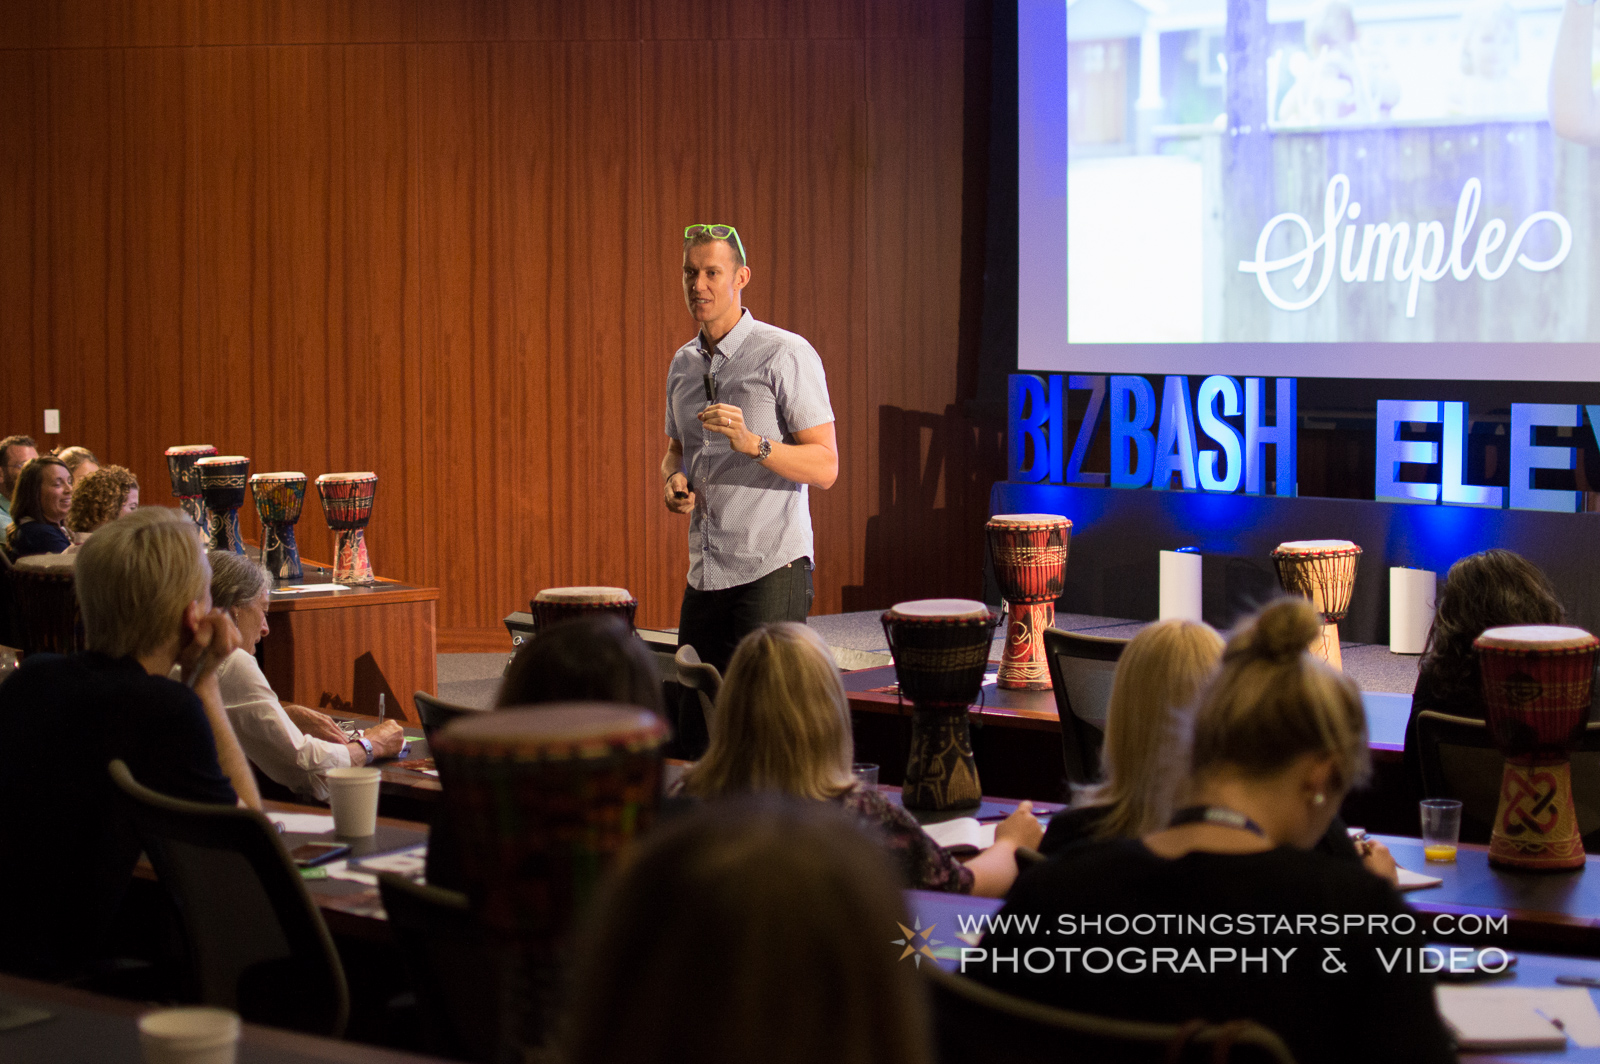 031_Bizbash_Elevate_Photo_By_Shooting_Stars_Pro.jpg